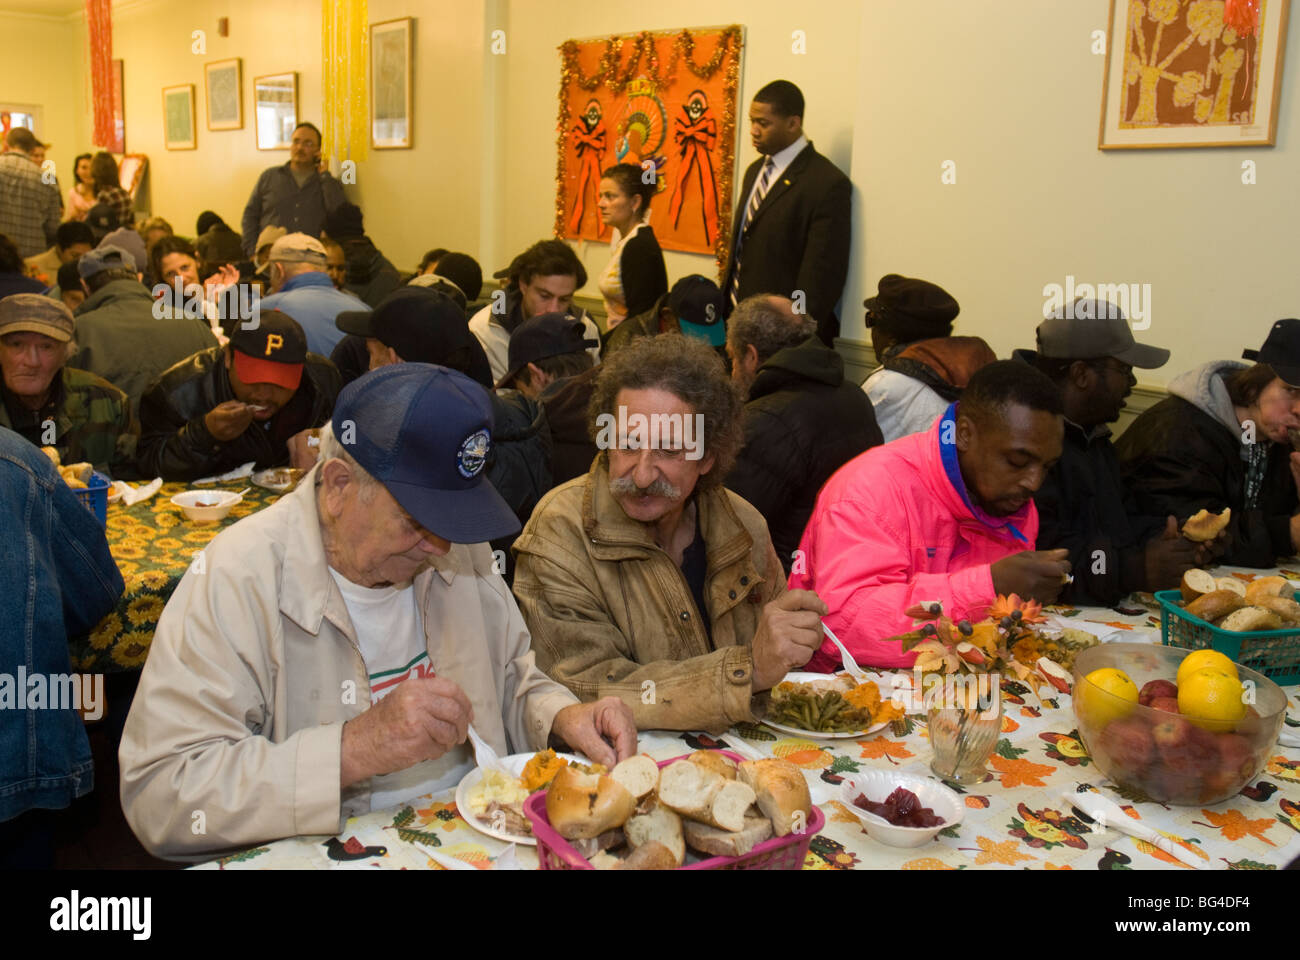 Soup Kitchen Soup Kitchen Usa Stock Photos Soup Kitchen Usa Stock Images Alamy